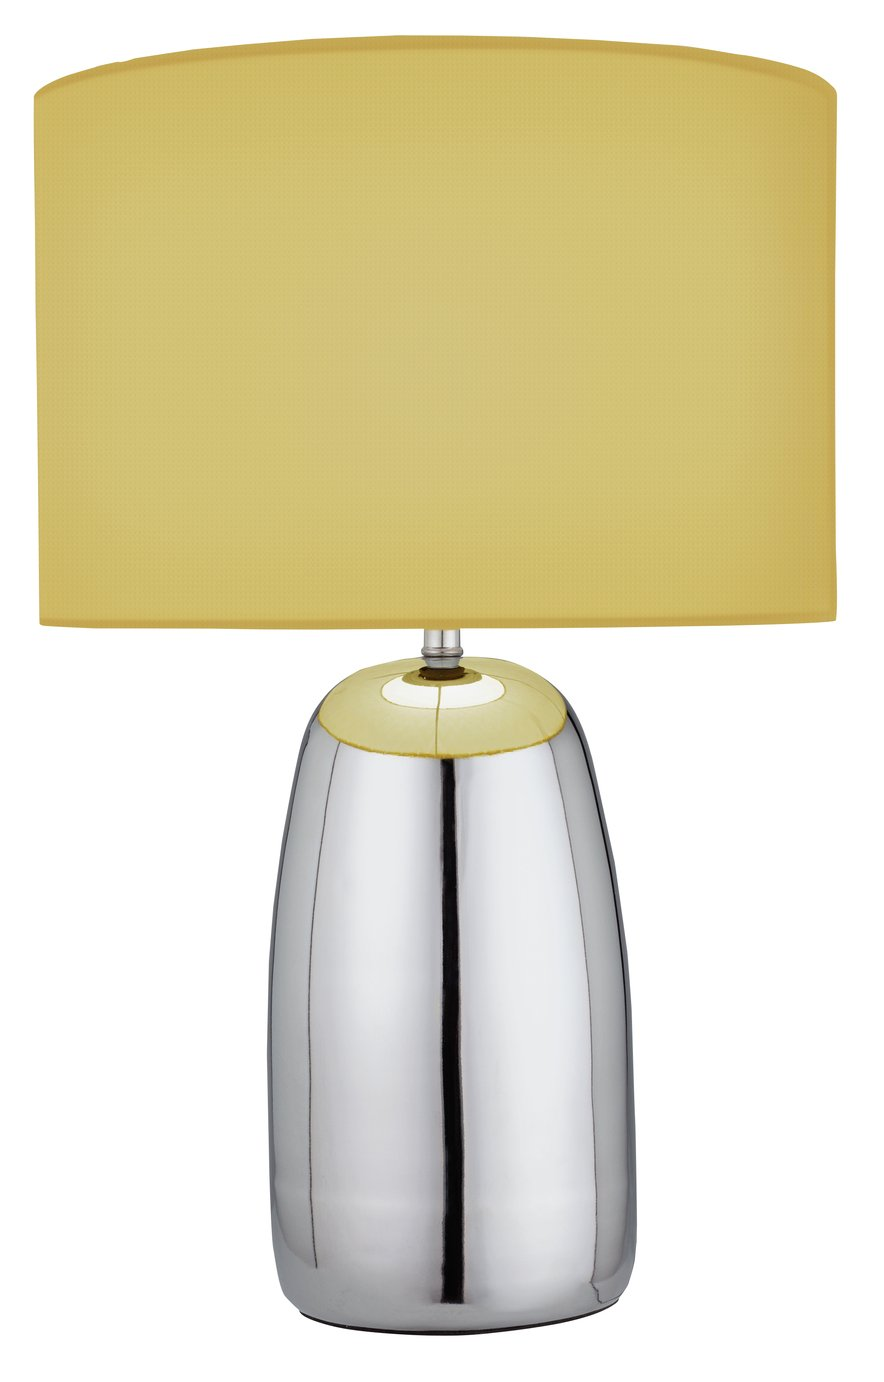 Argos Home Largo Touch Table Lamp - Yellow & Chrome